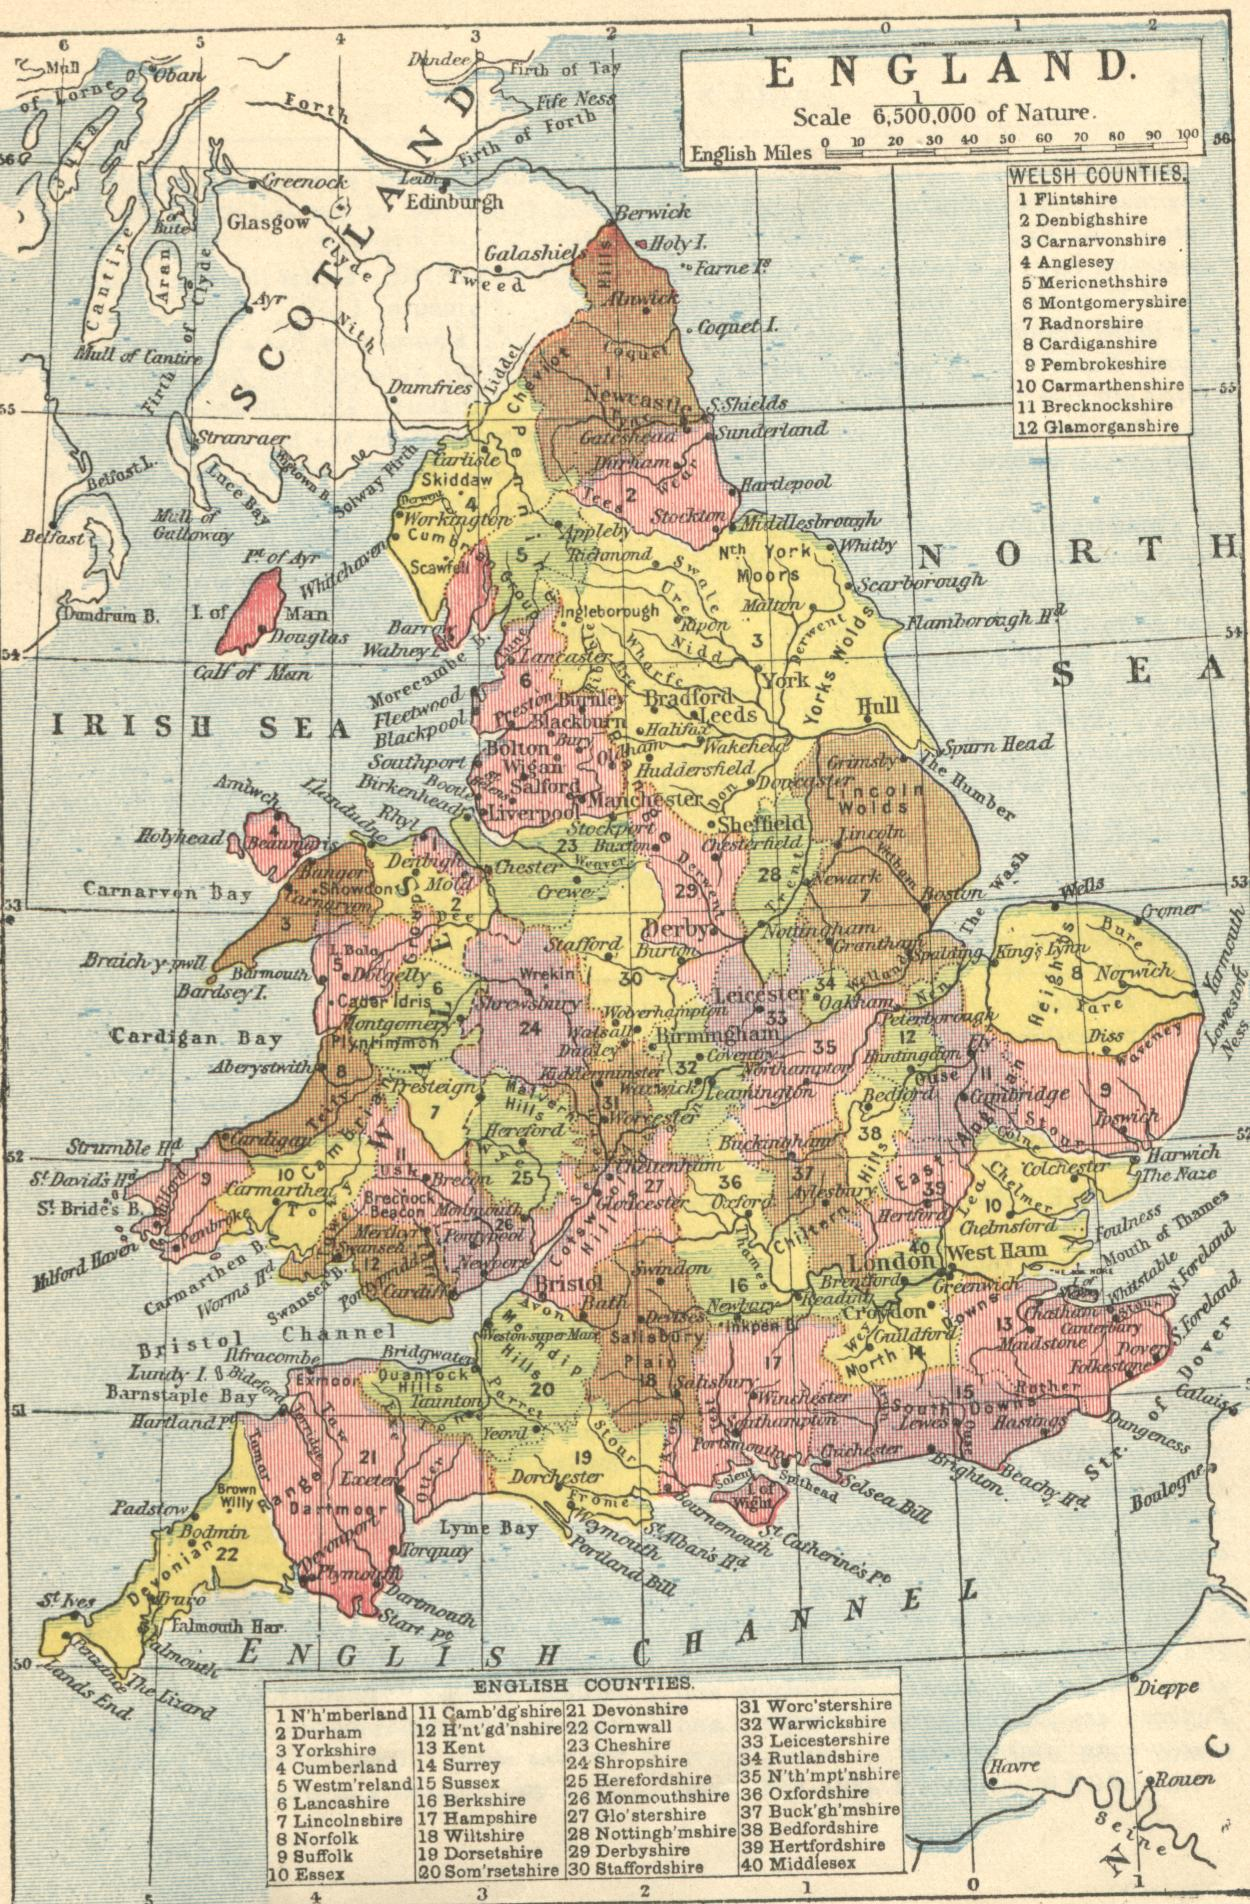 Map Of England And Wales.Map Of England And Wales Counties Towns And Rivers Between 1864